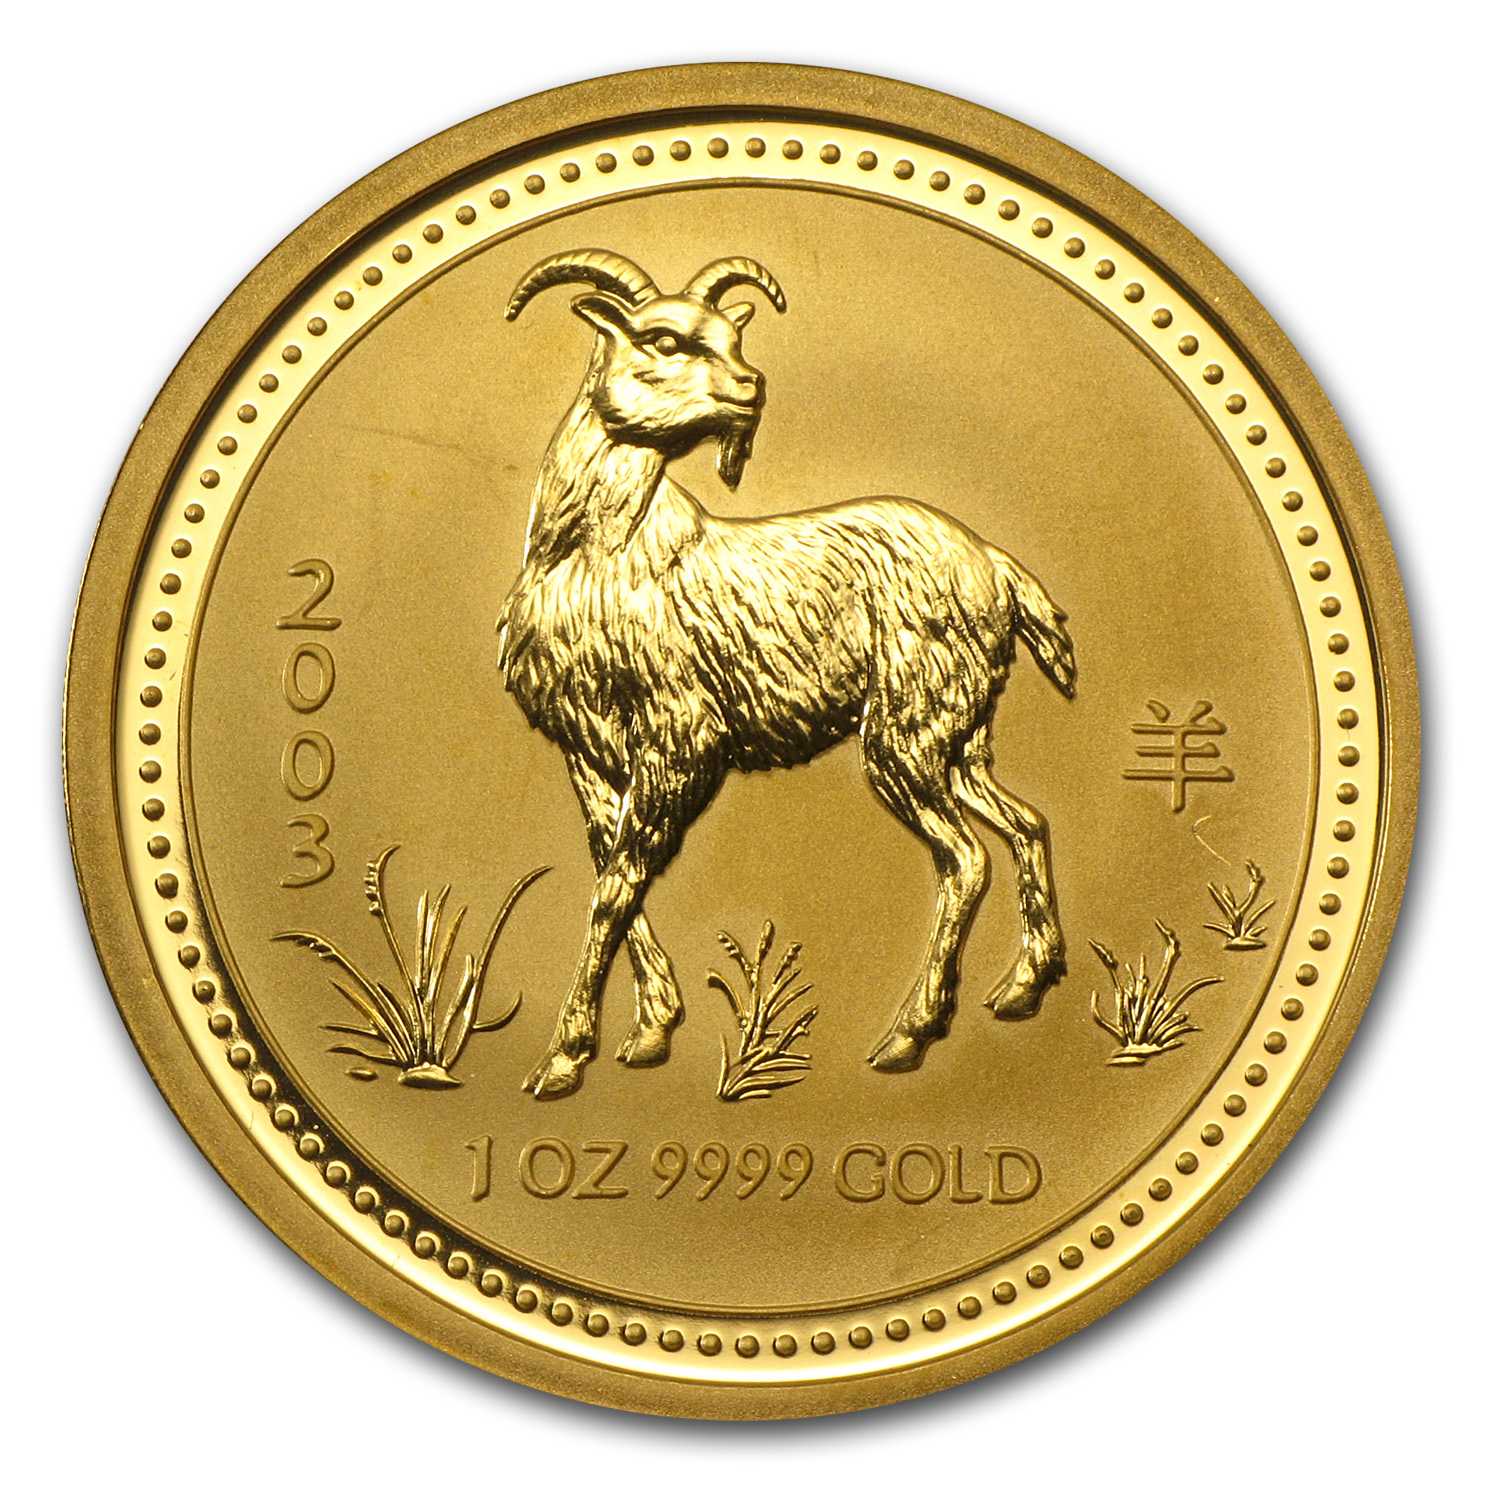 2003 1 oz Gold Year of the Goat Lunar Coin (SI) (Light Abrasions)